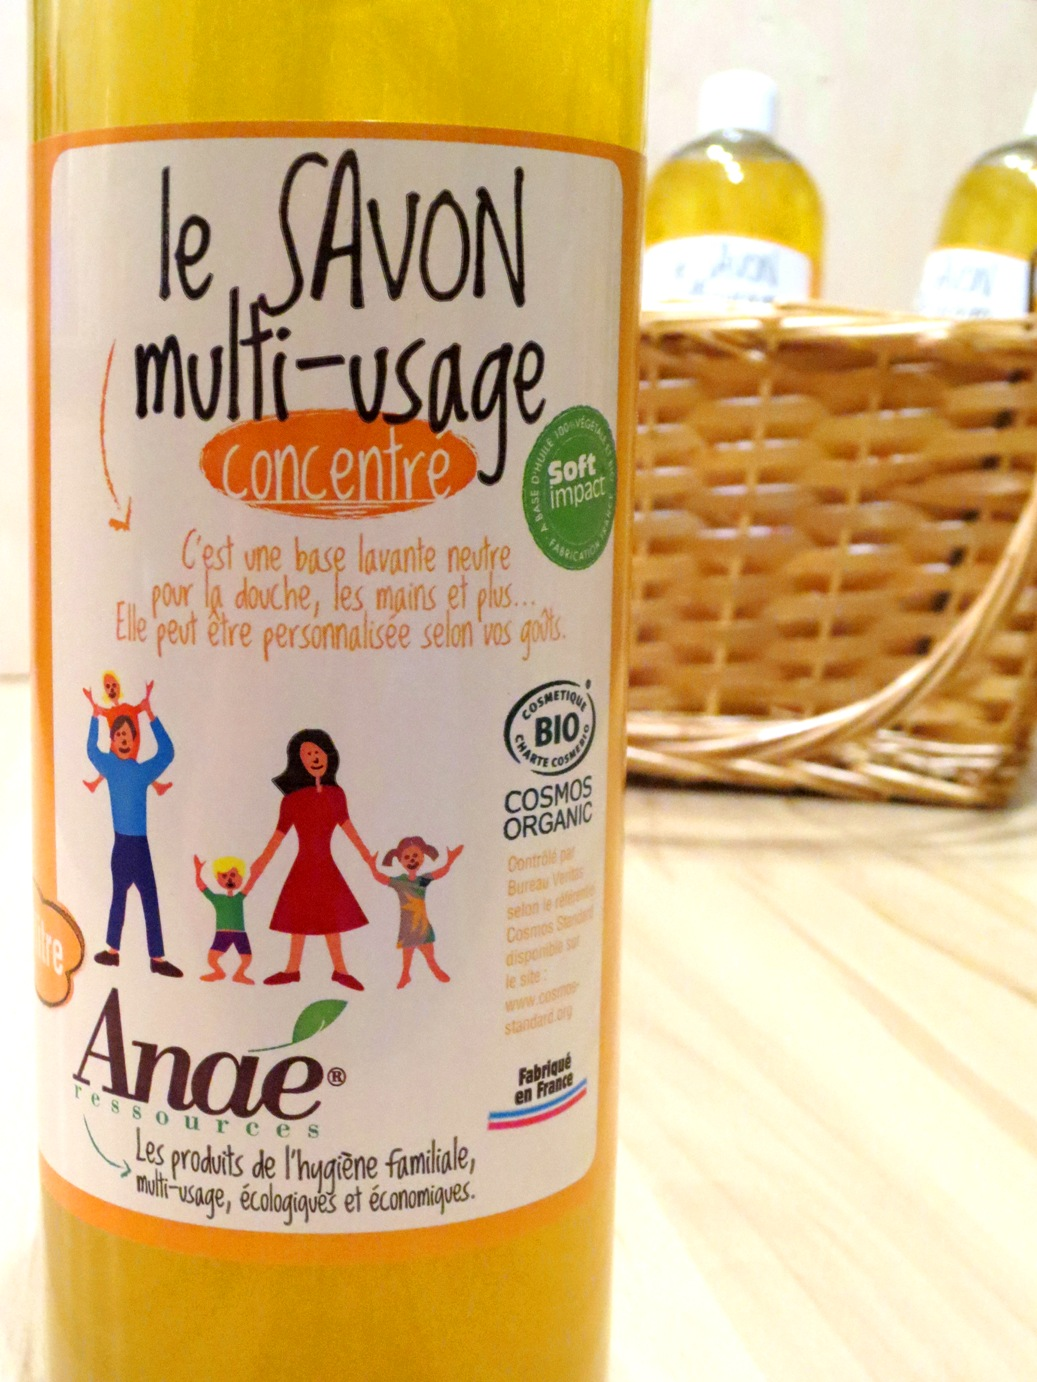 Savon multi usage 2